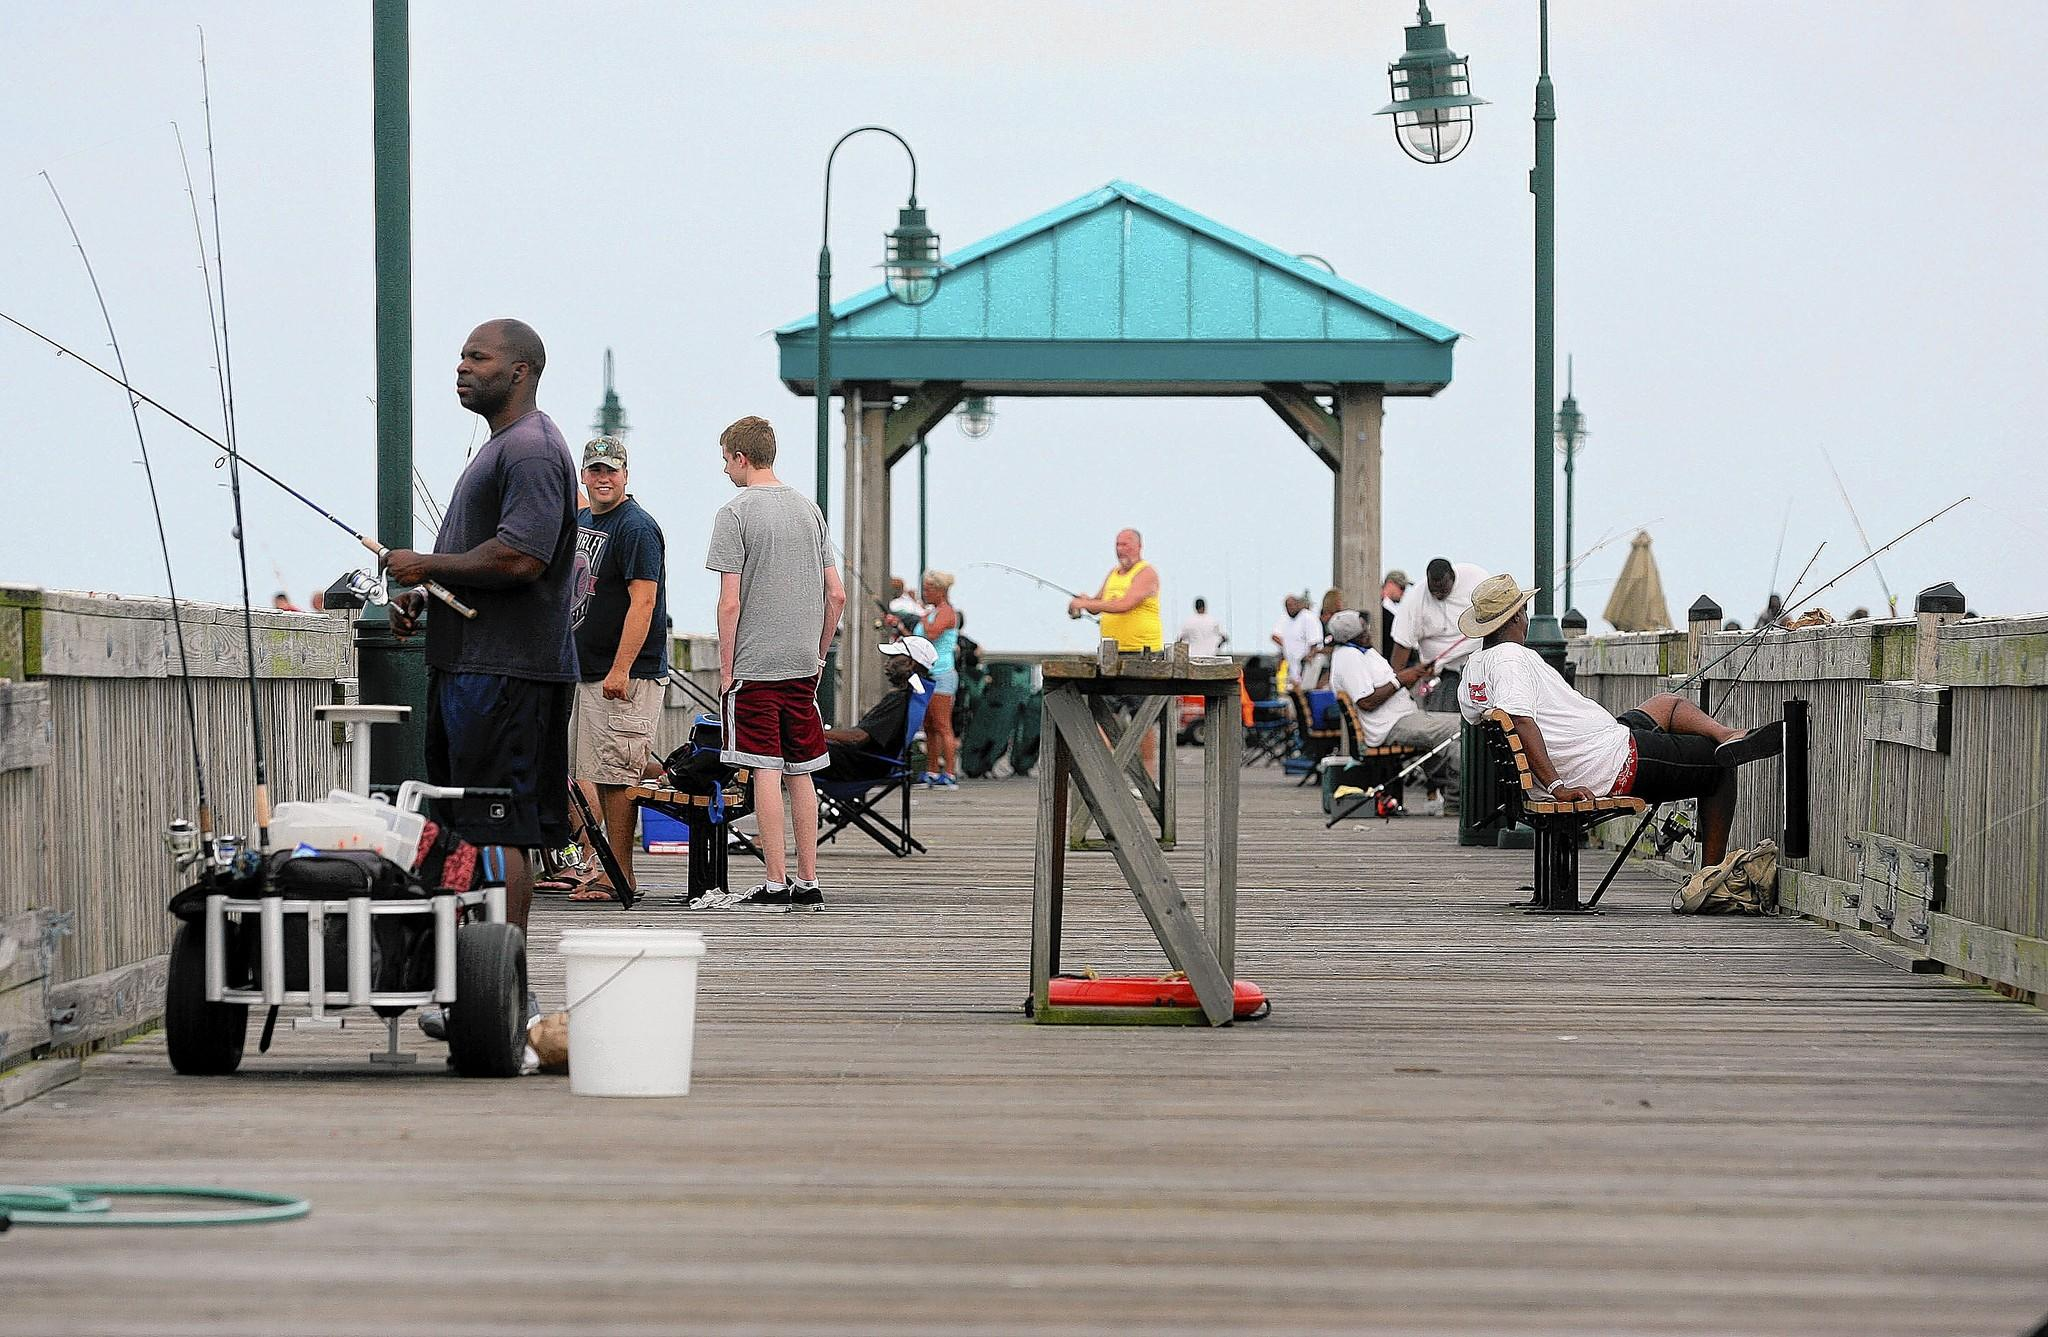 It was business as usual at the Buckroe Fishing Pier on Thursday evening as Hurricane Arthur churned in the Atlantic to the southeast.